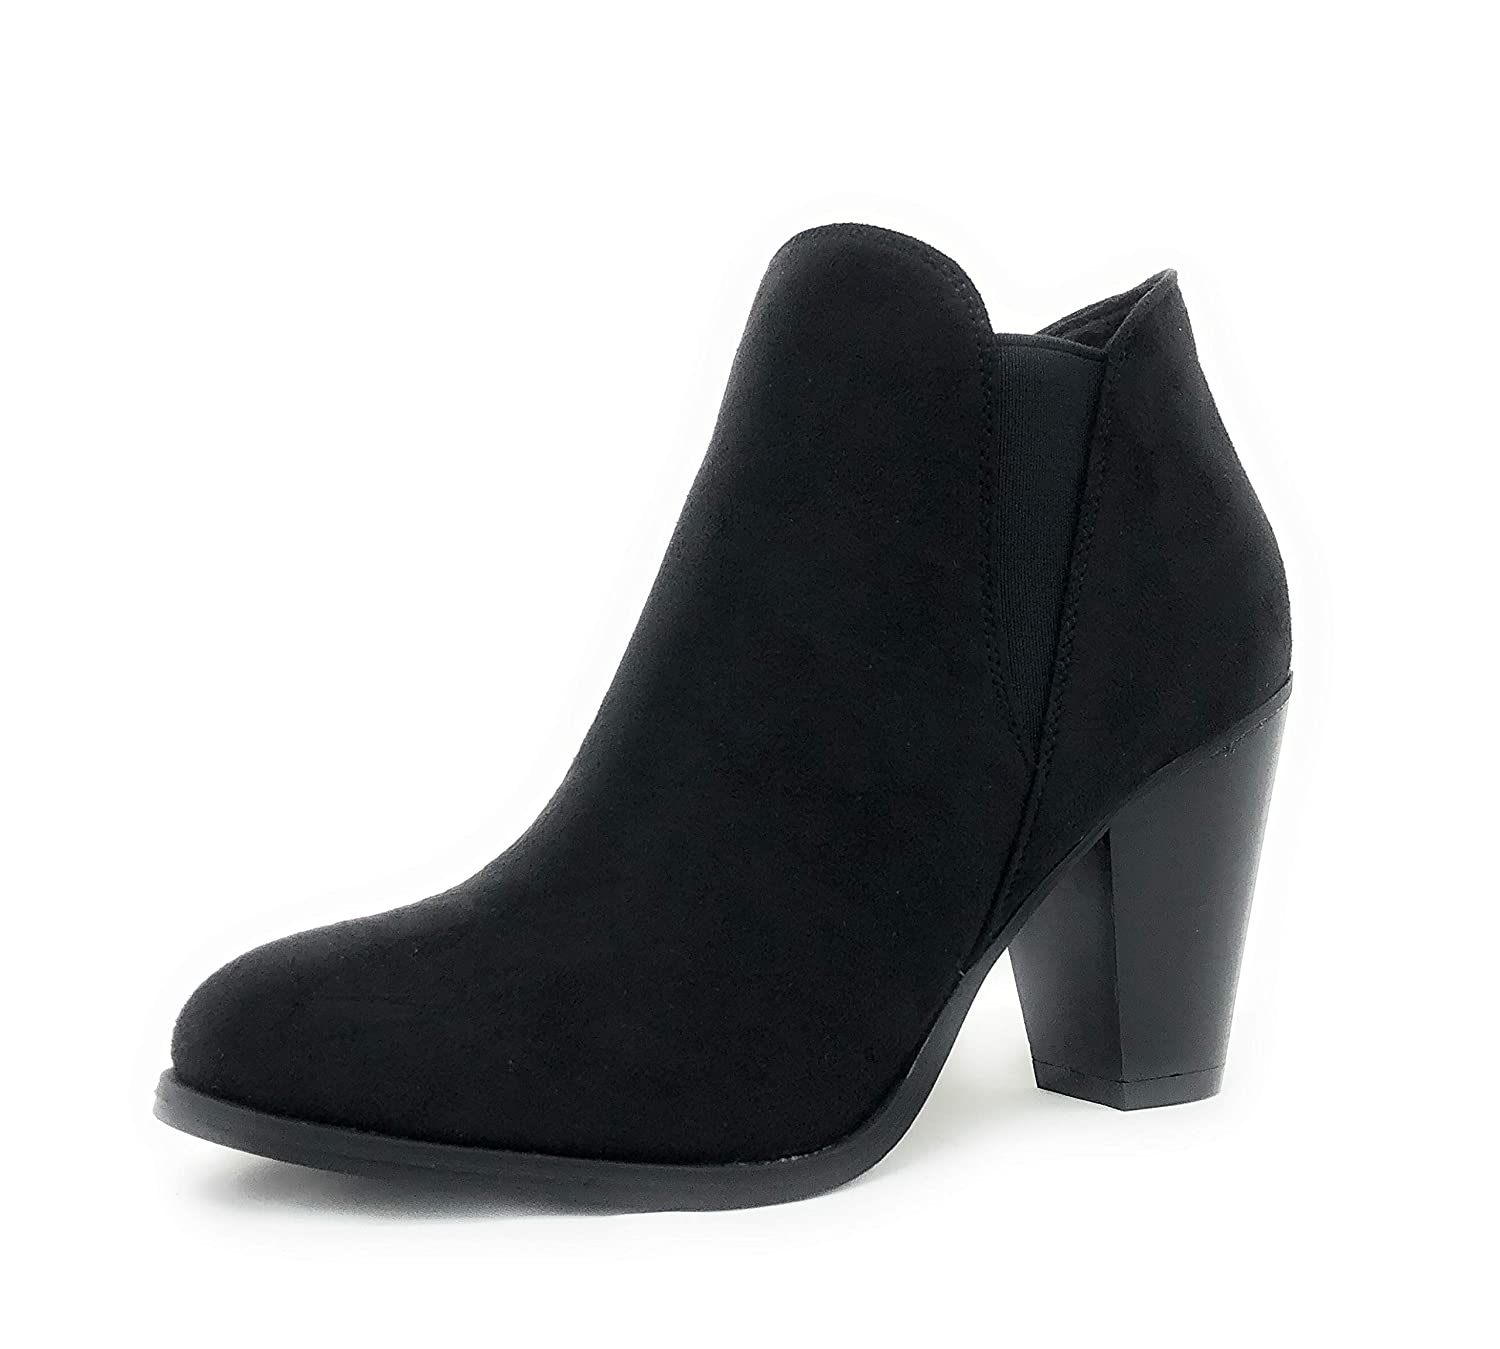 Black-camila-16 SOLE COLLECTION Faux Leather Suede Strap Side Zipper Chunky Block Heels Dress Ankle Boots